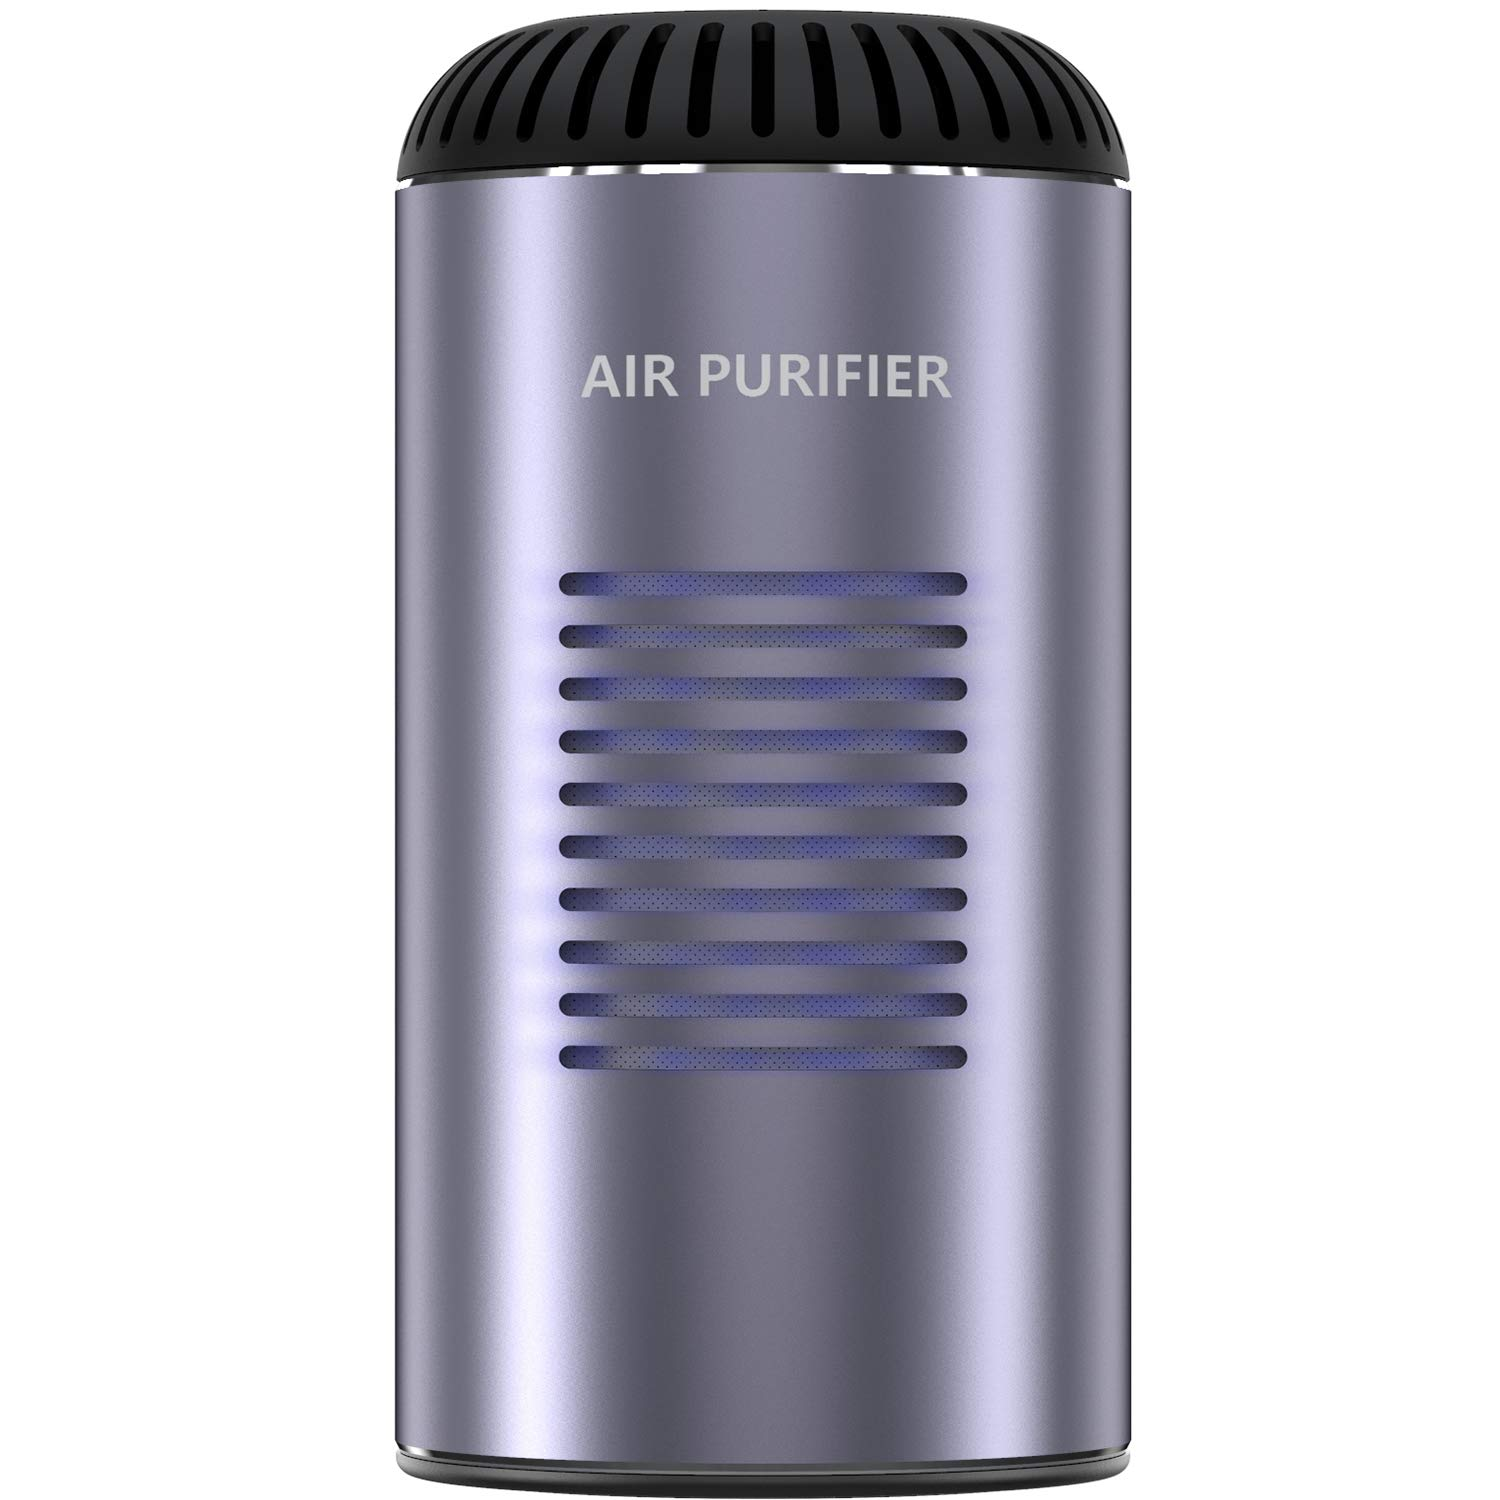 Despful Car Air Purifier Negative Ion Generator Travel Personal Air Cleaner, Portable Hepa Particle Filter for Office and Home Room - Improve Allergen Odor, Smoke, Pets, Pollen (Metal Gray)